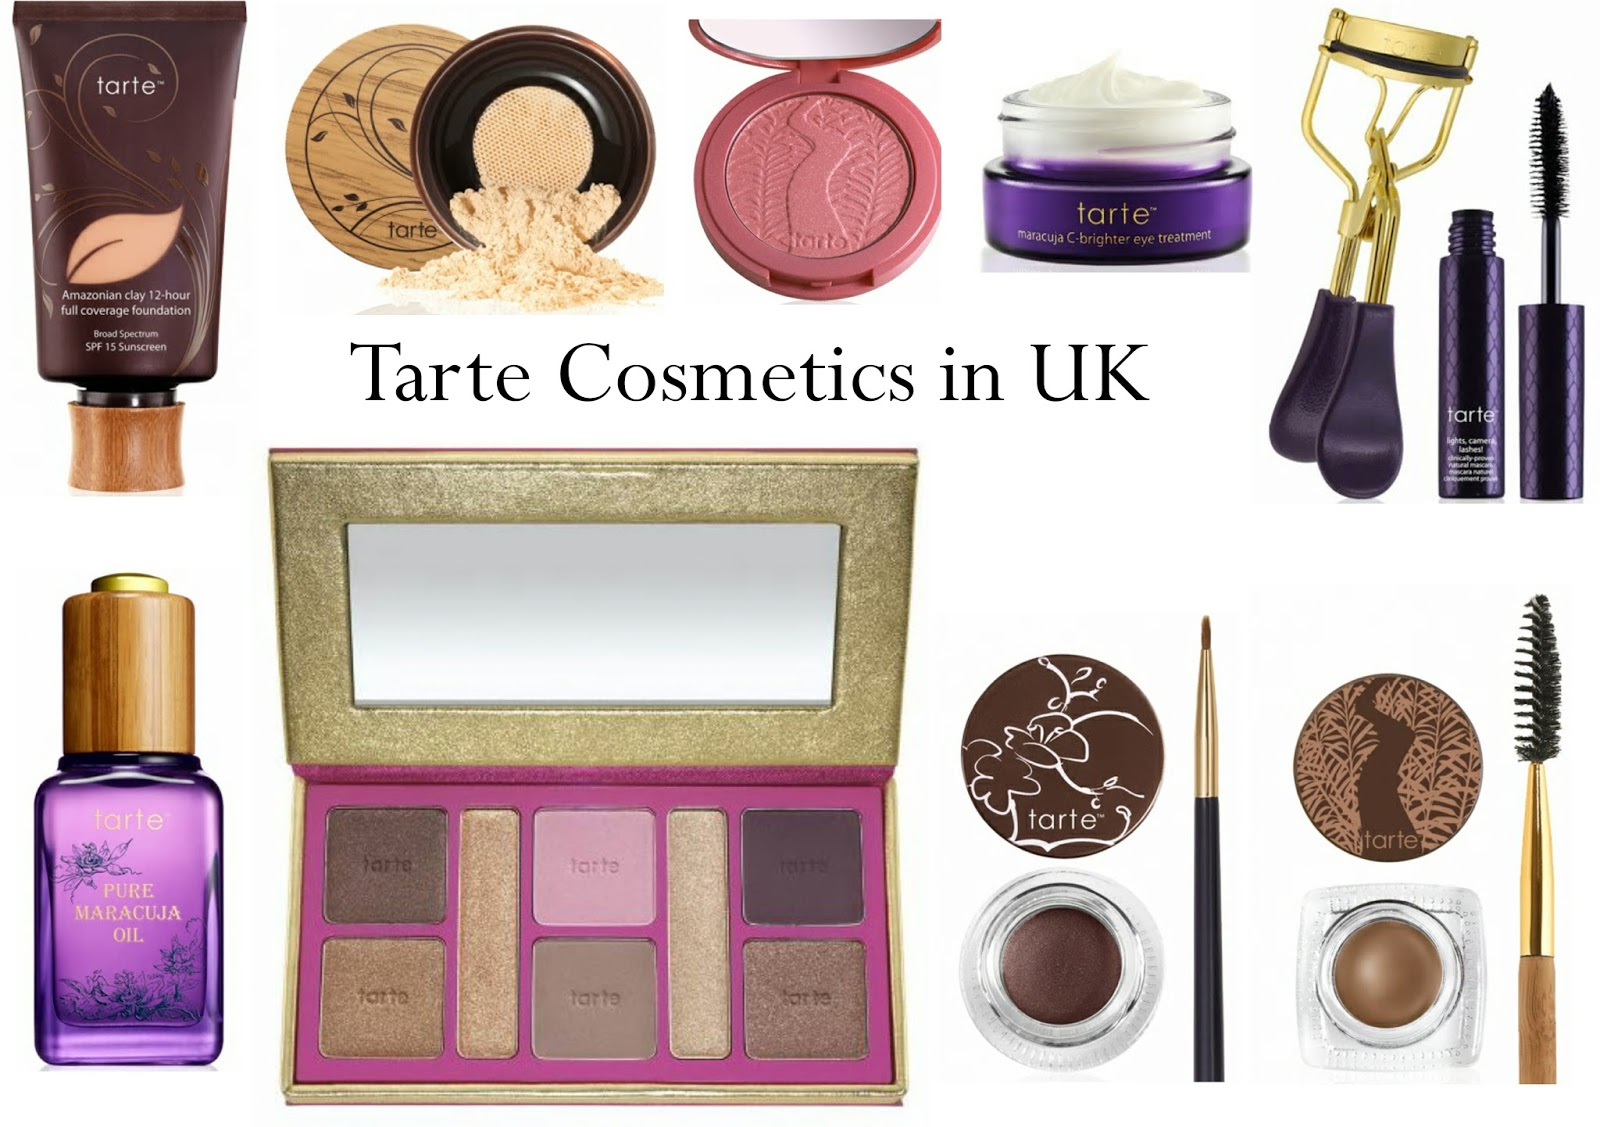 Tarte's easy-to-use, high-performance formulas infuse good-for-your-skin ingredients into each product to deliver radiant results across cosmetics and skincare.